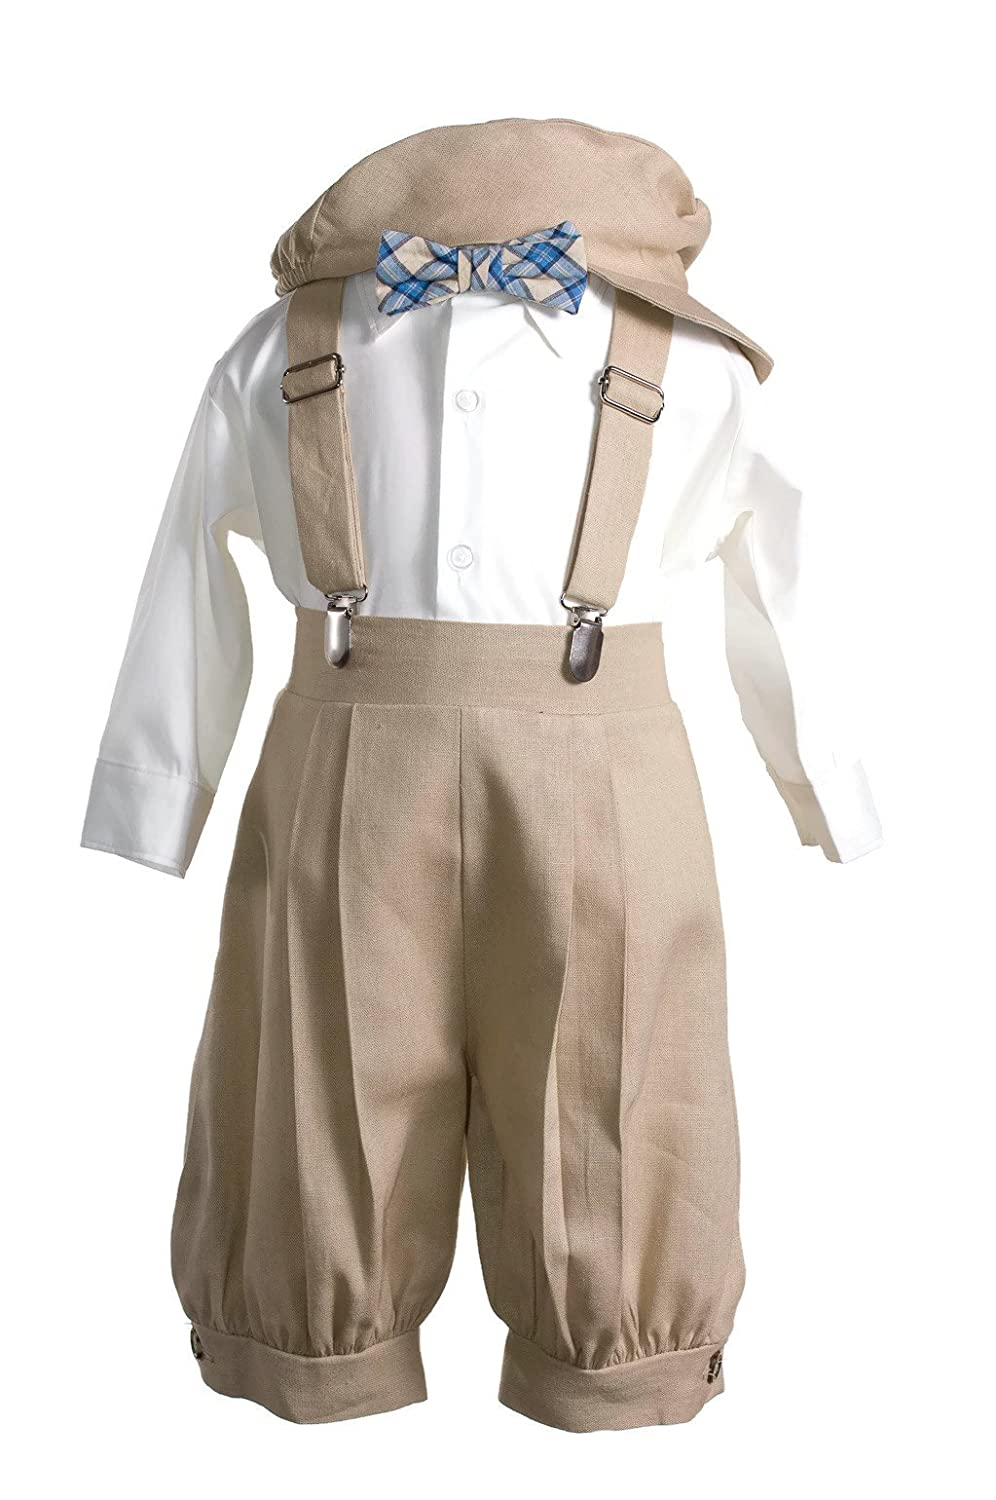 b17470f39194 Amazon.com  Boys Tan Linen Knicker Outfit Plaid Bow Tie for Baby and ...